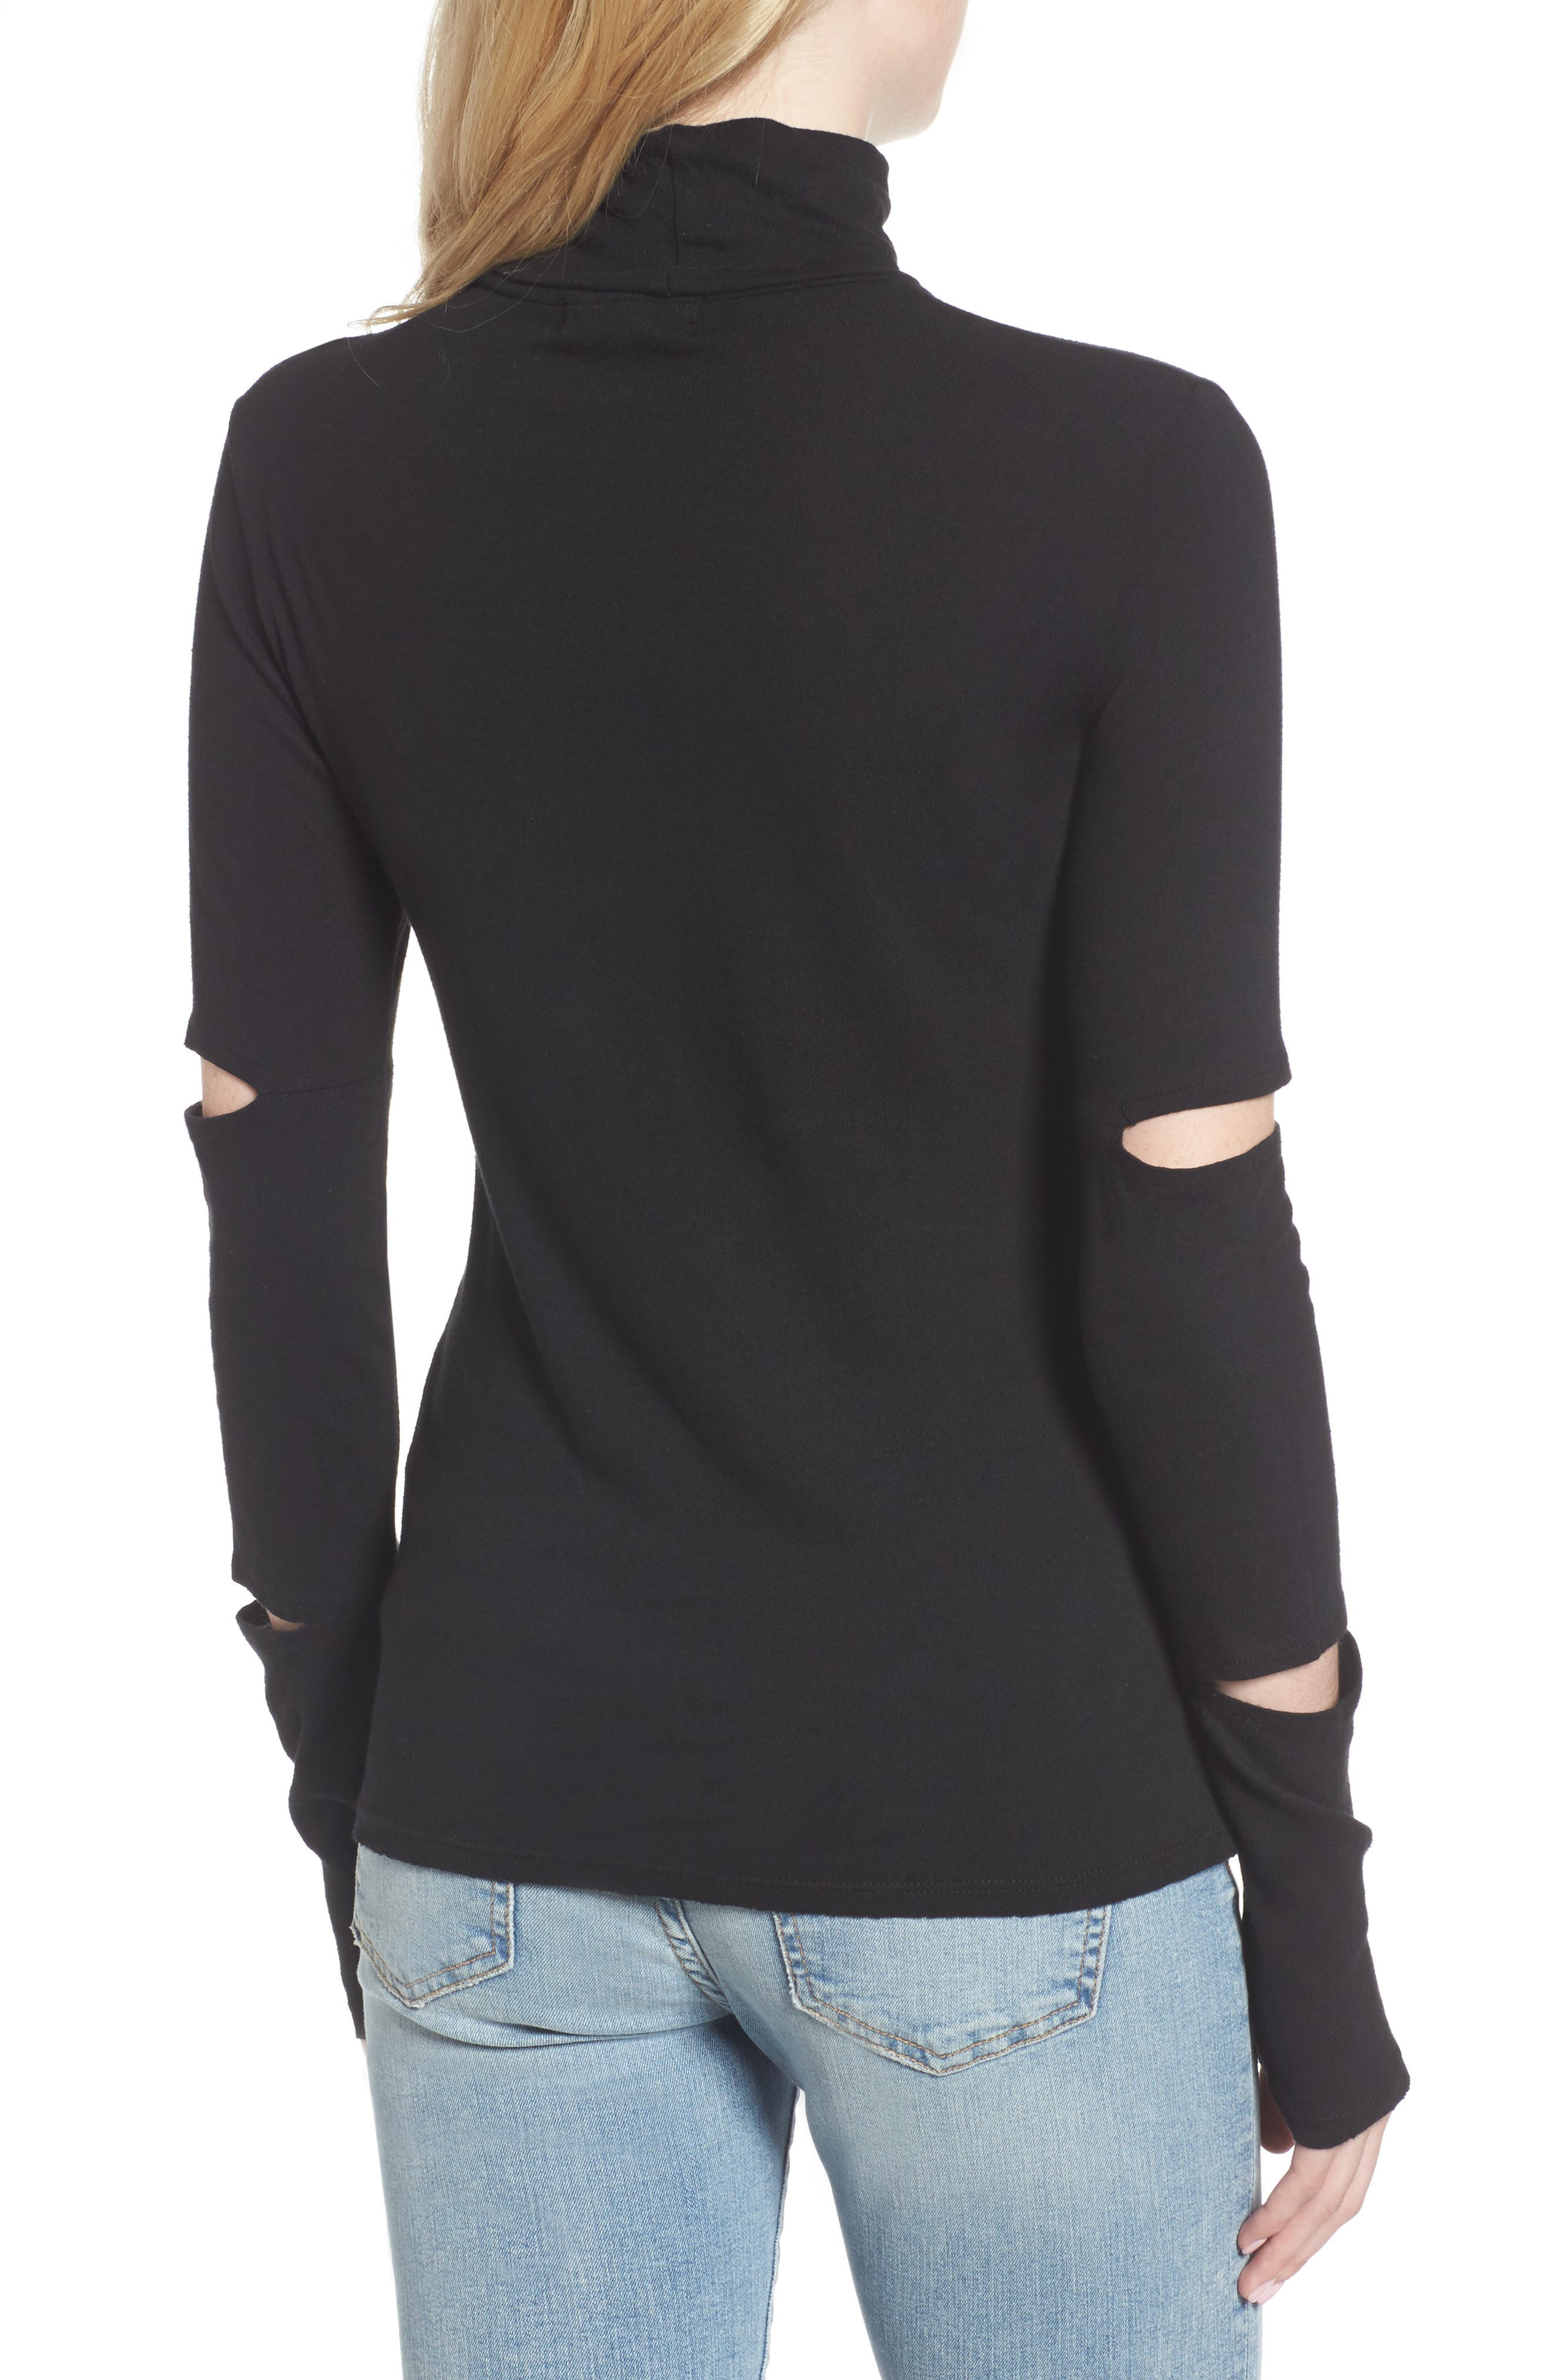 Easton Cutout Turtleneck,                             Alternate thumbnail 2, color,                             001